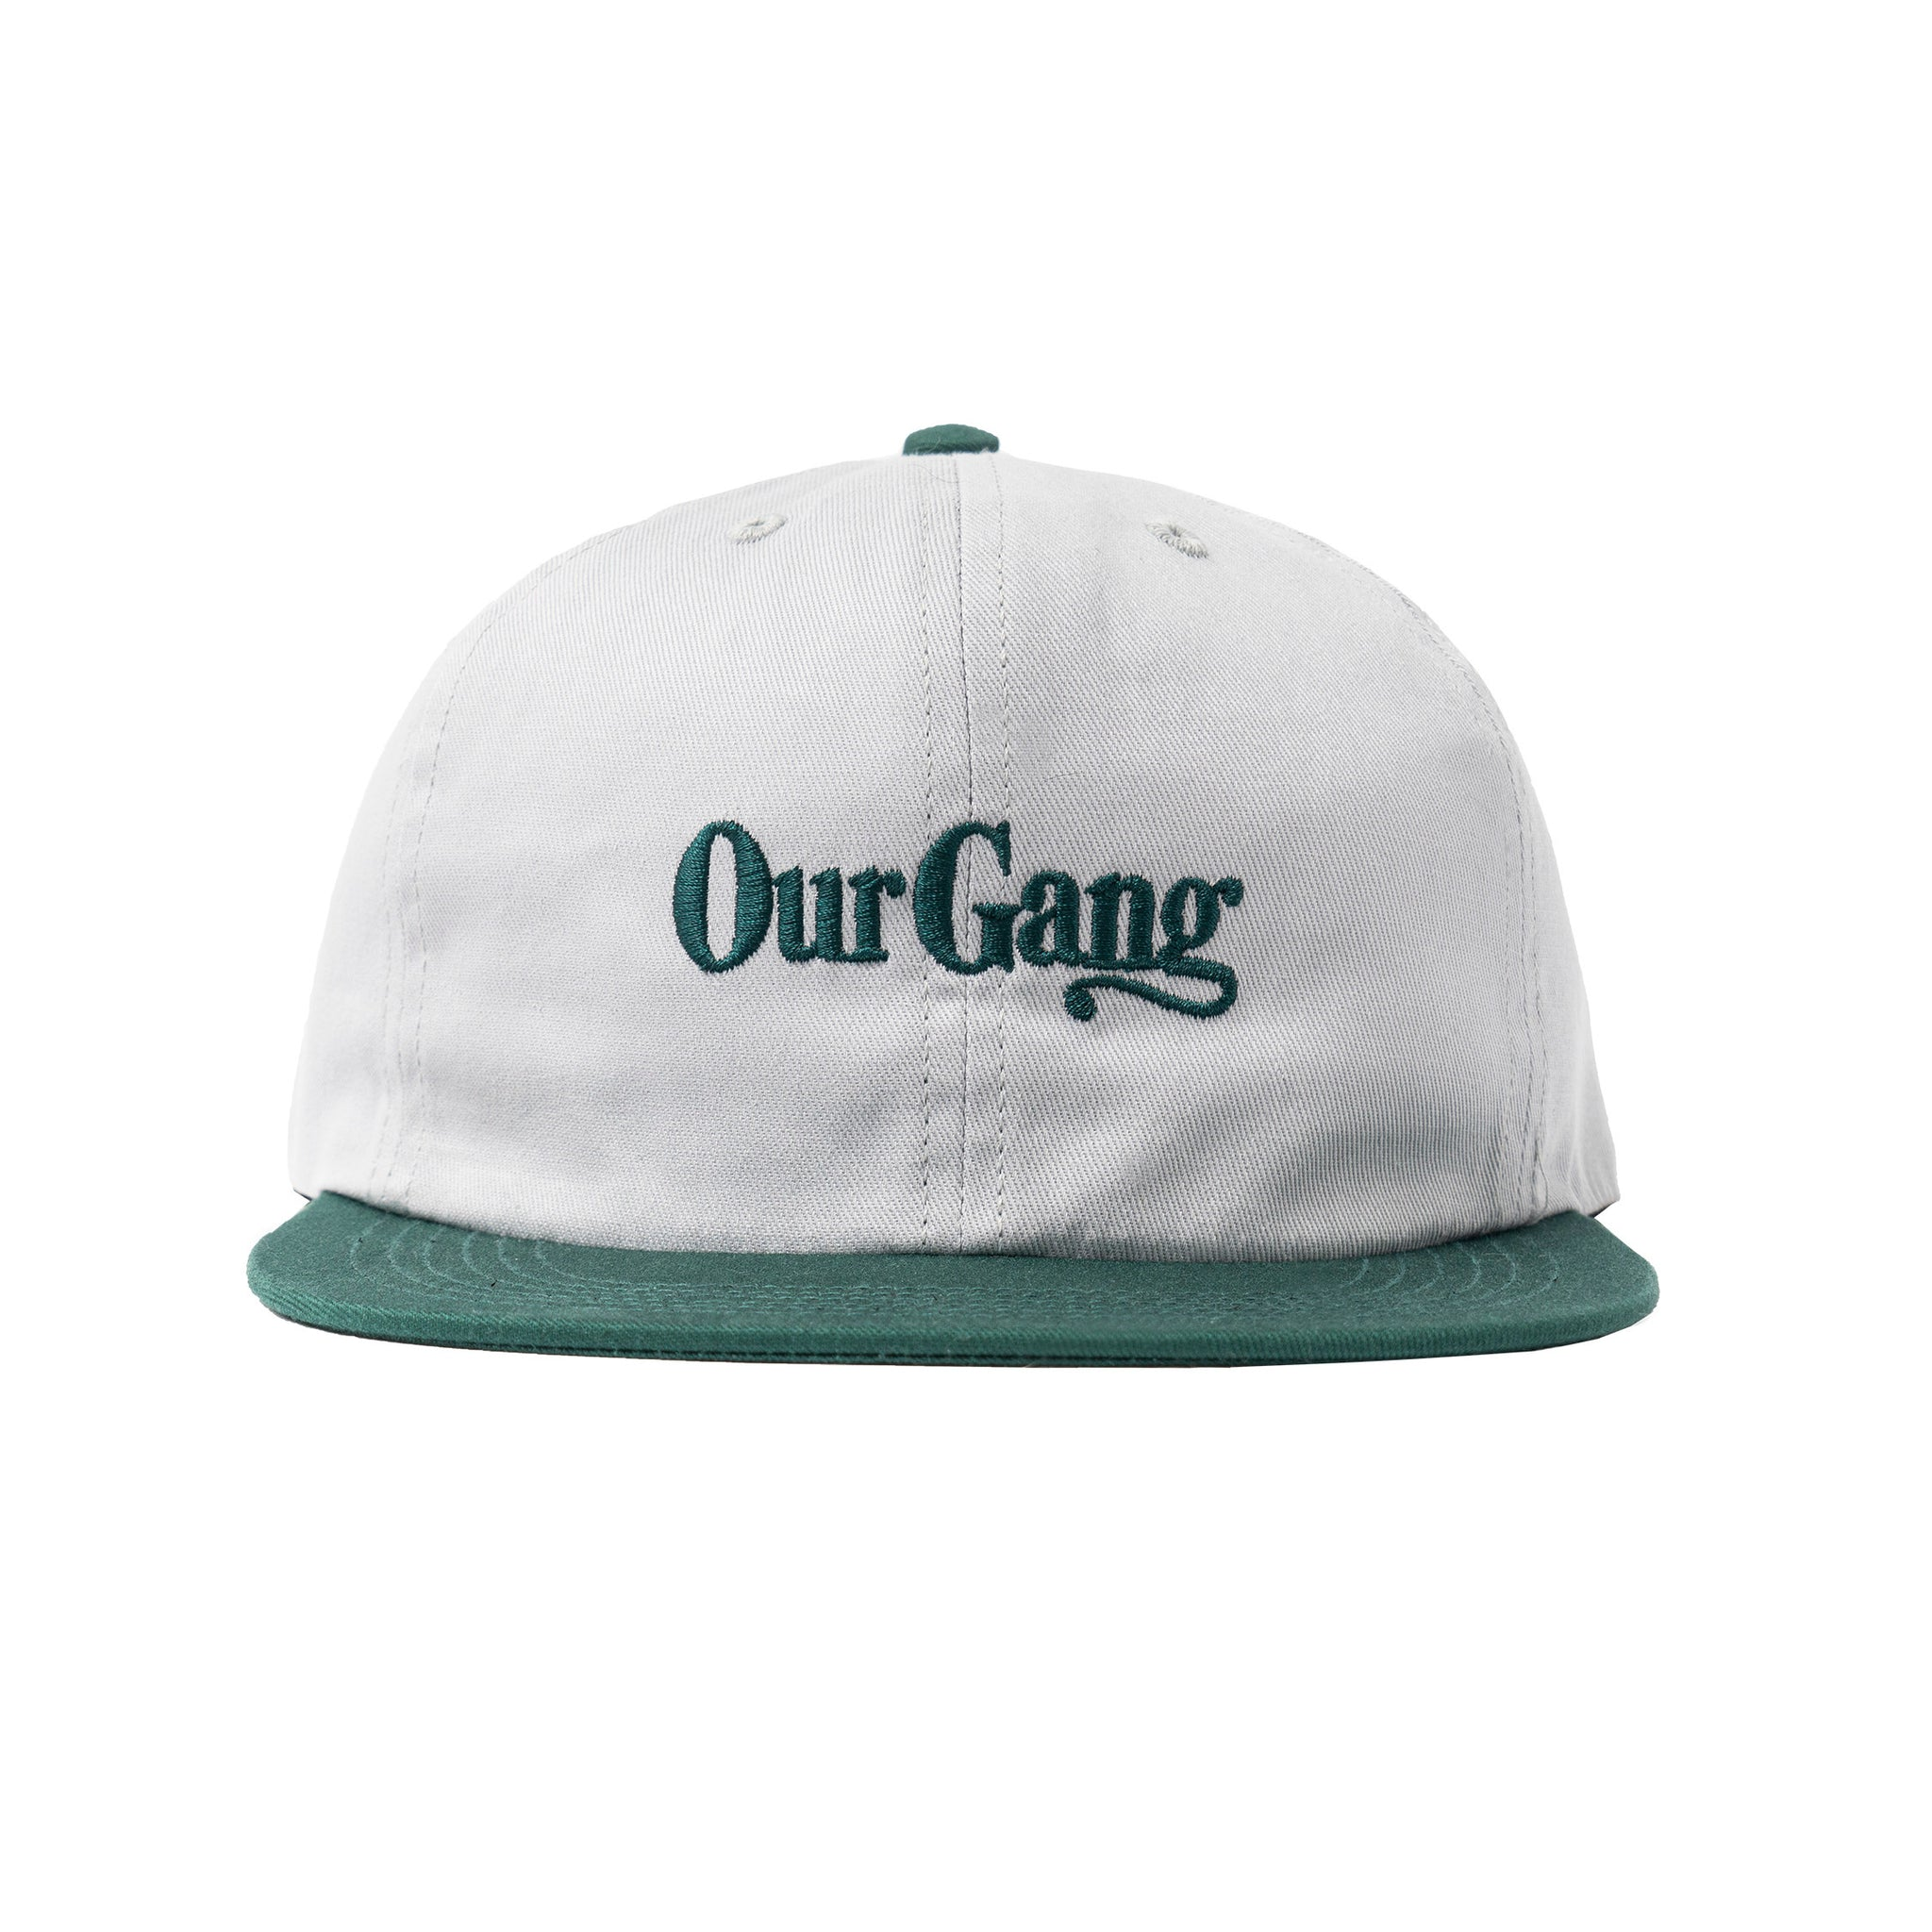 OUR GANG CAP